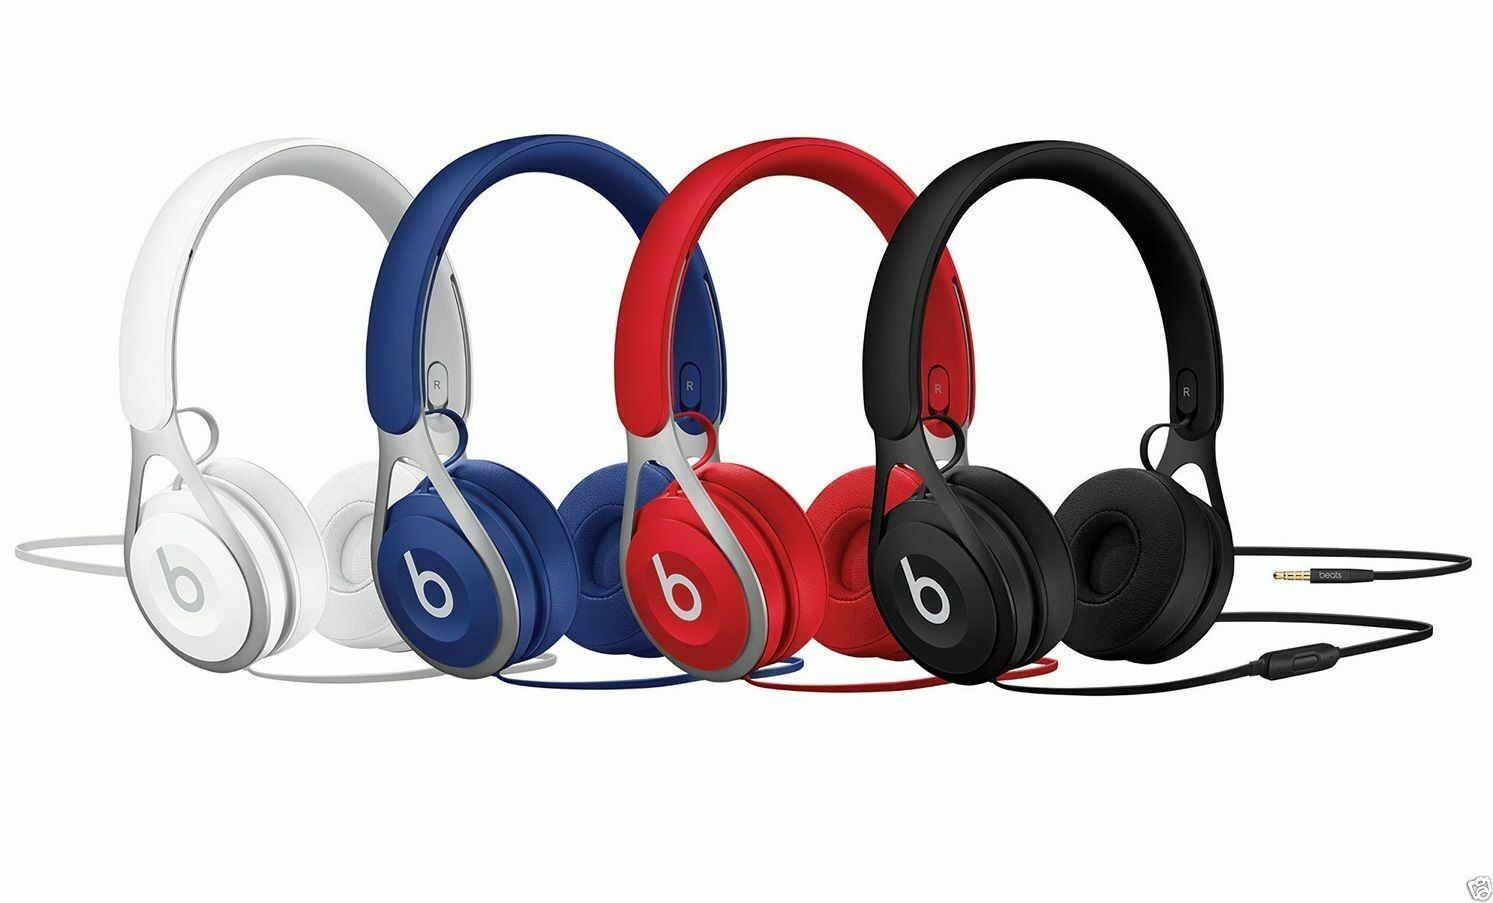 NEW Beats by Dr. Dre EP On-Ear Headband Headphones - Black, Blue, White, Red 1